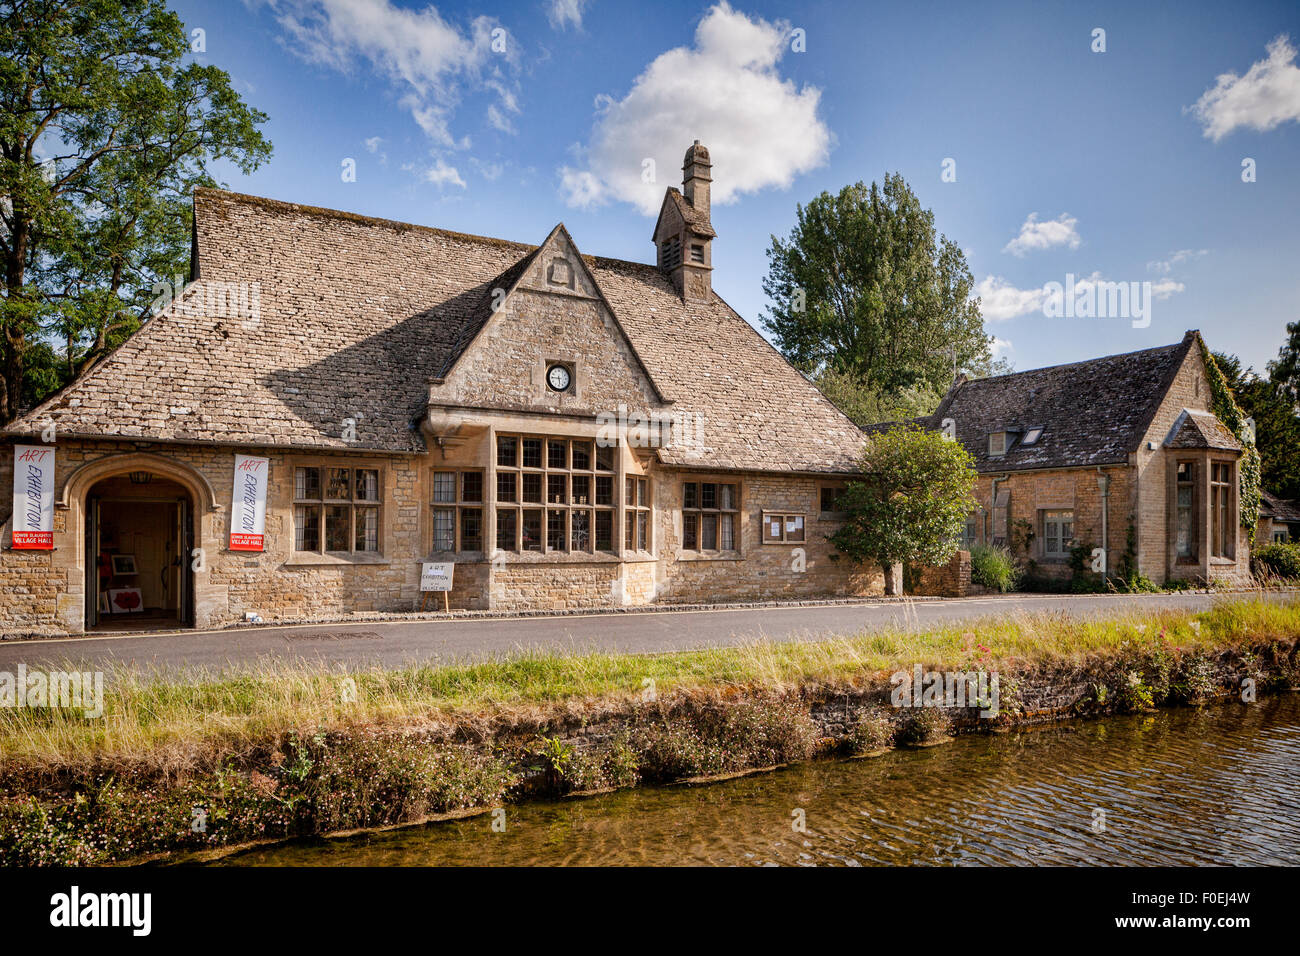 Village Hall in Lower Slaughter, Gloucestershire. - Stock Image